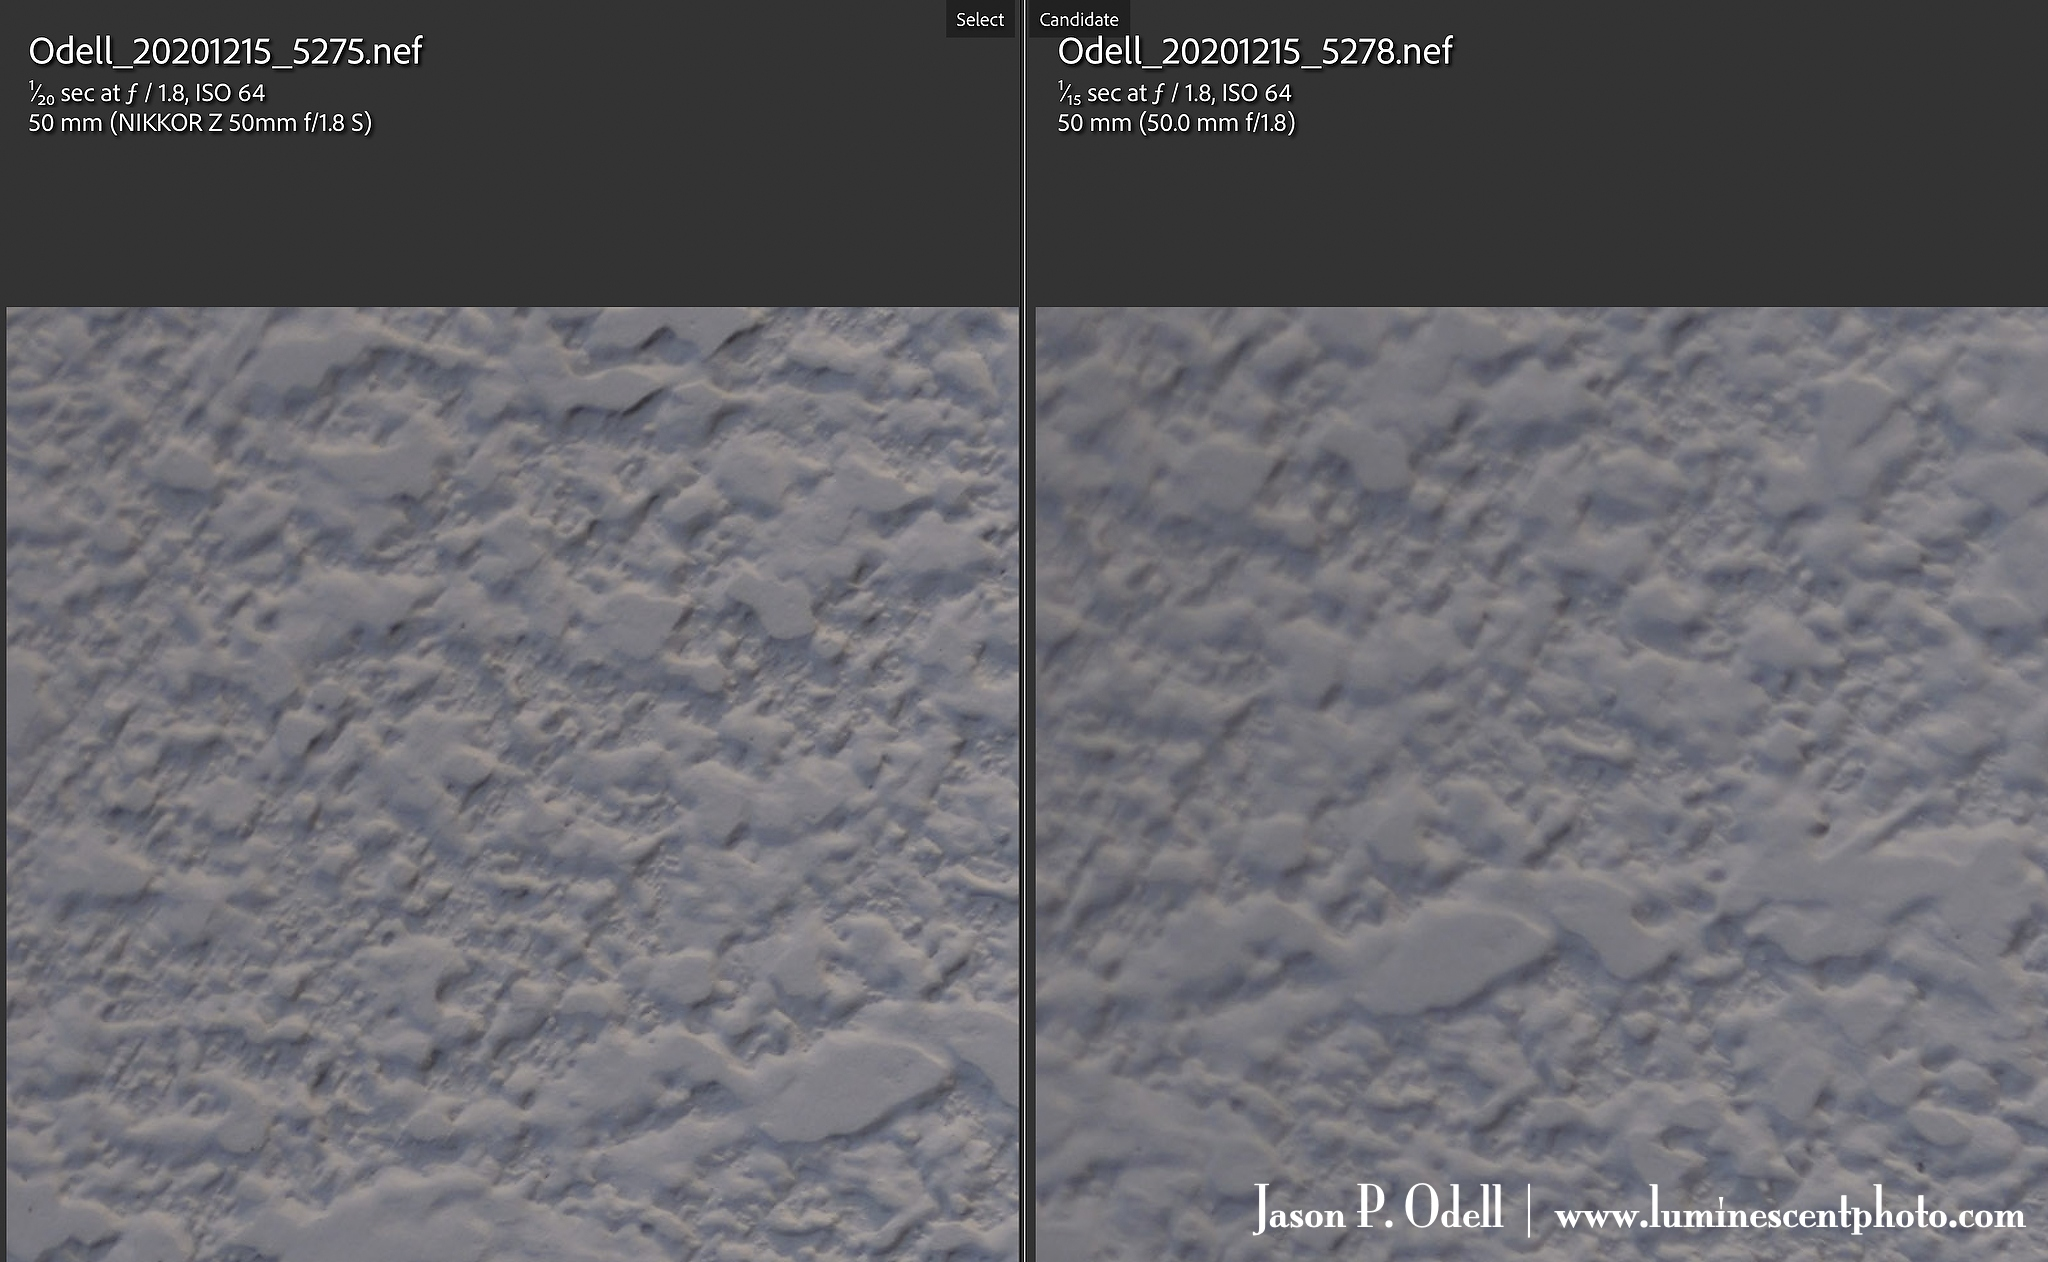 A comparison of corner sharpness between the Nikon 50mm f/1.8S and 50mm f/1.8G lenses.